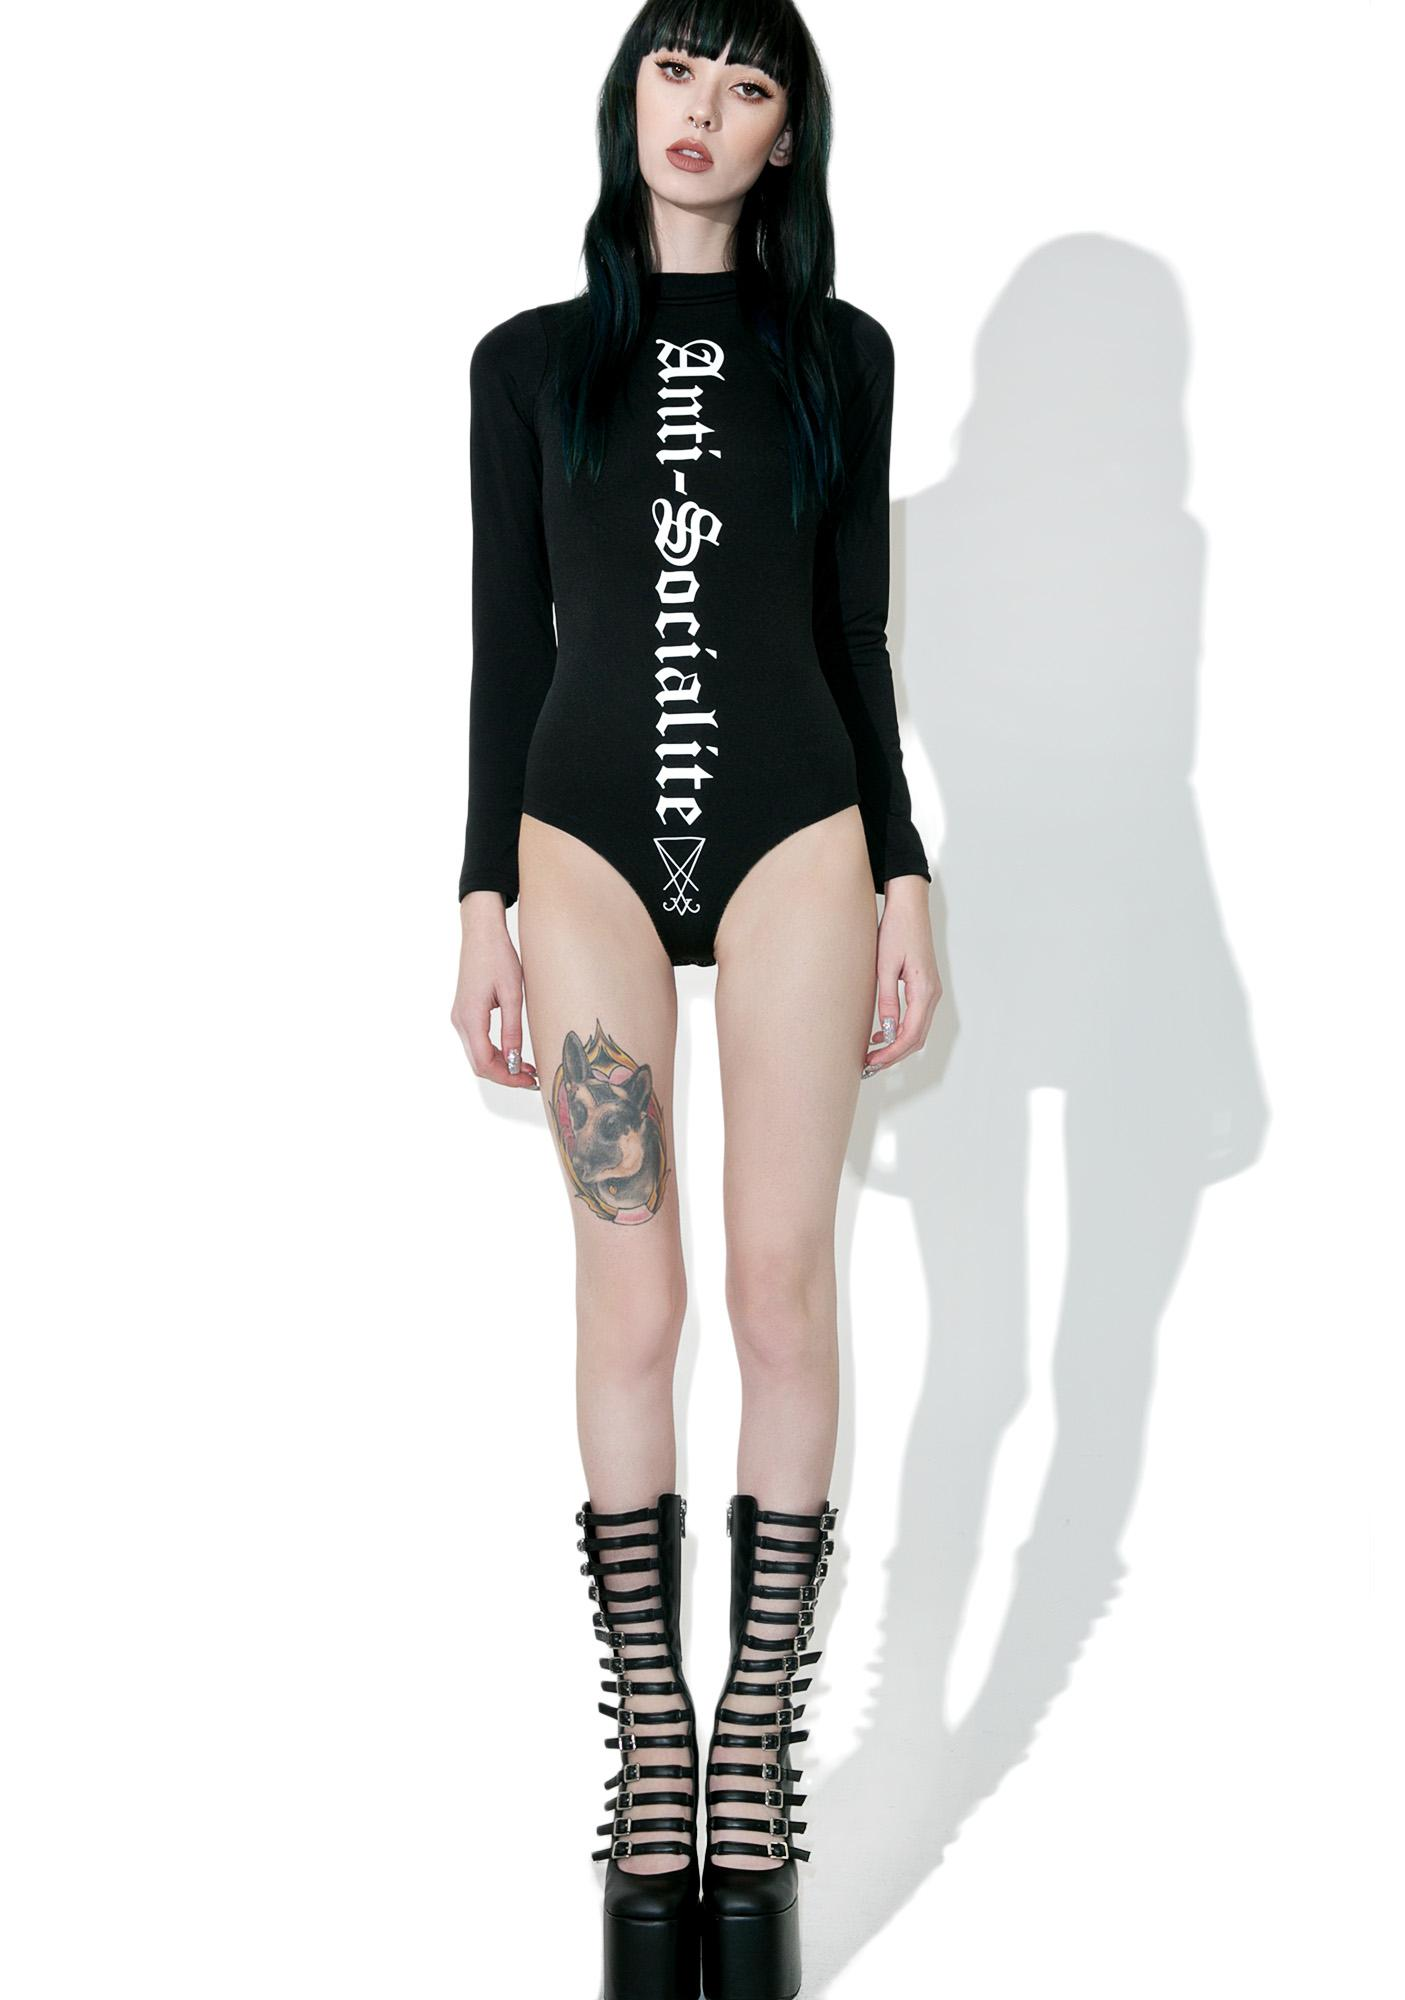 Disturbia Anti-Socialite Bodysuit